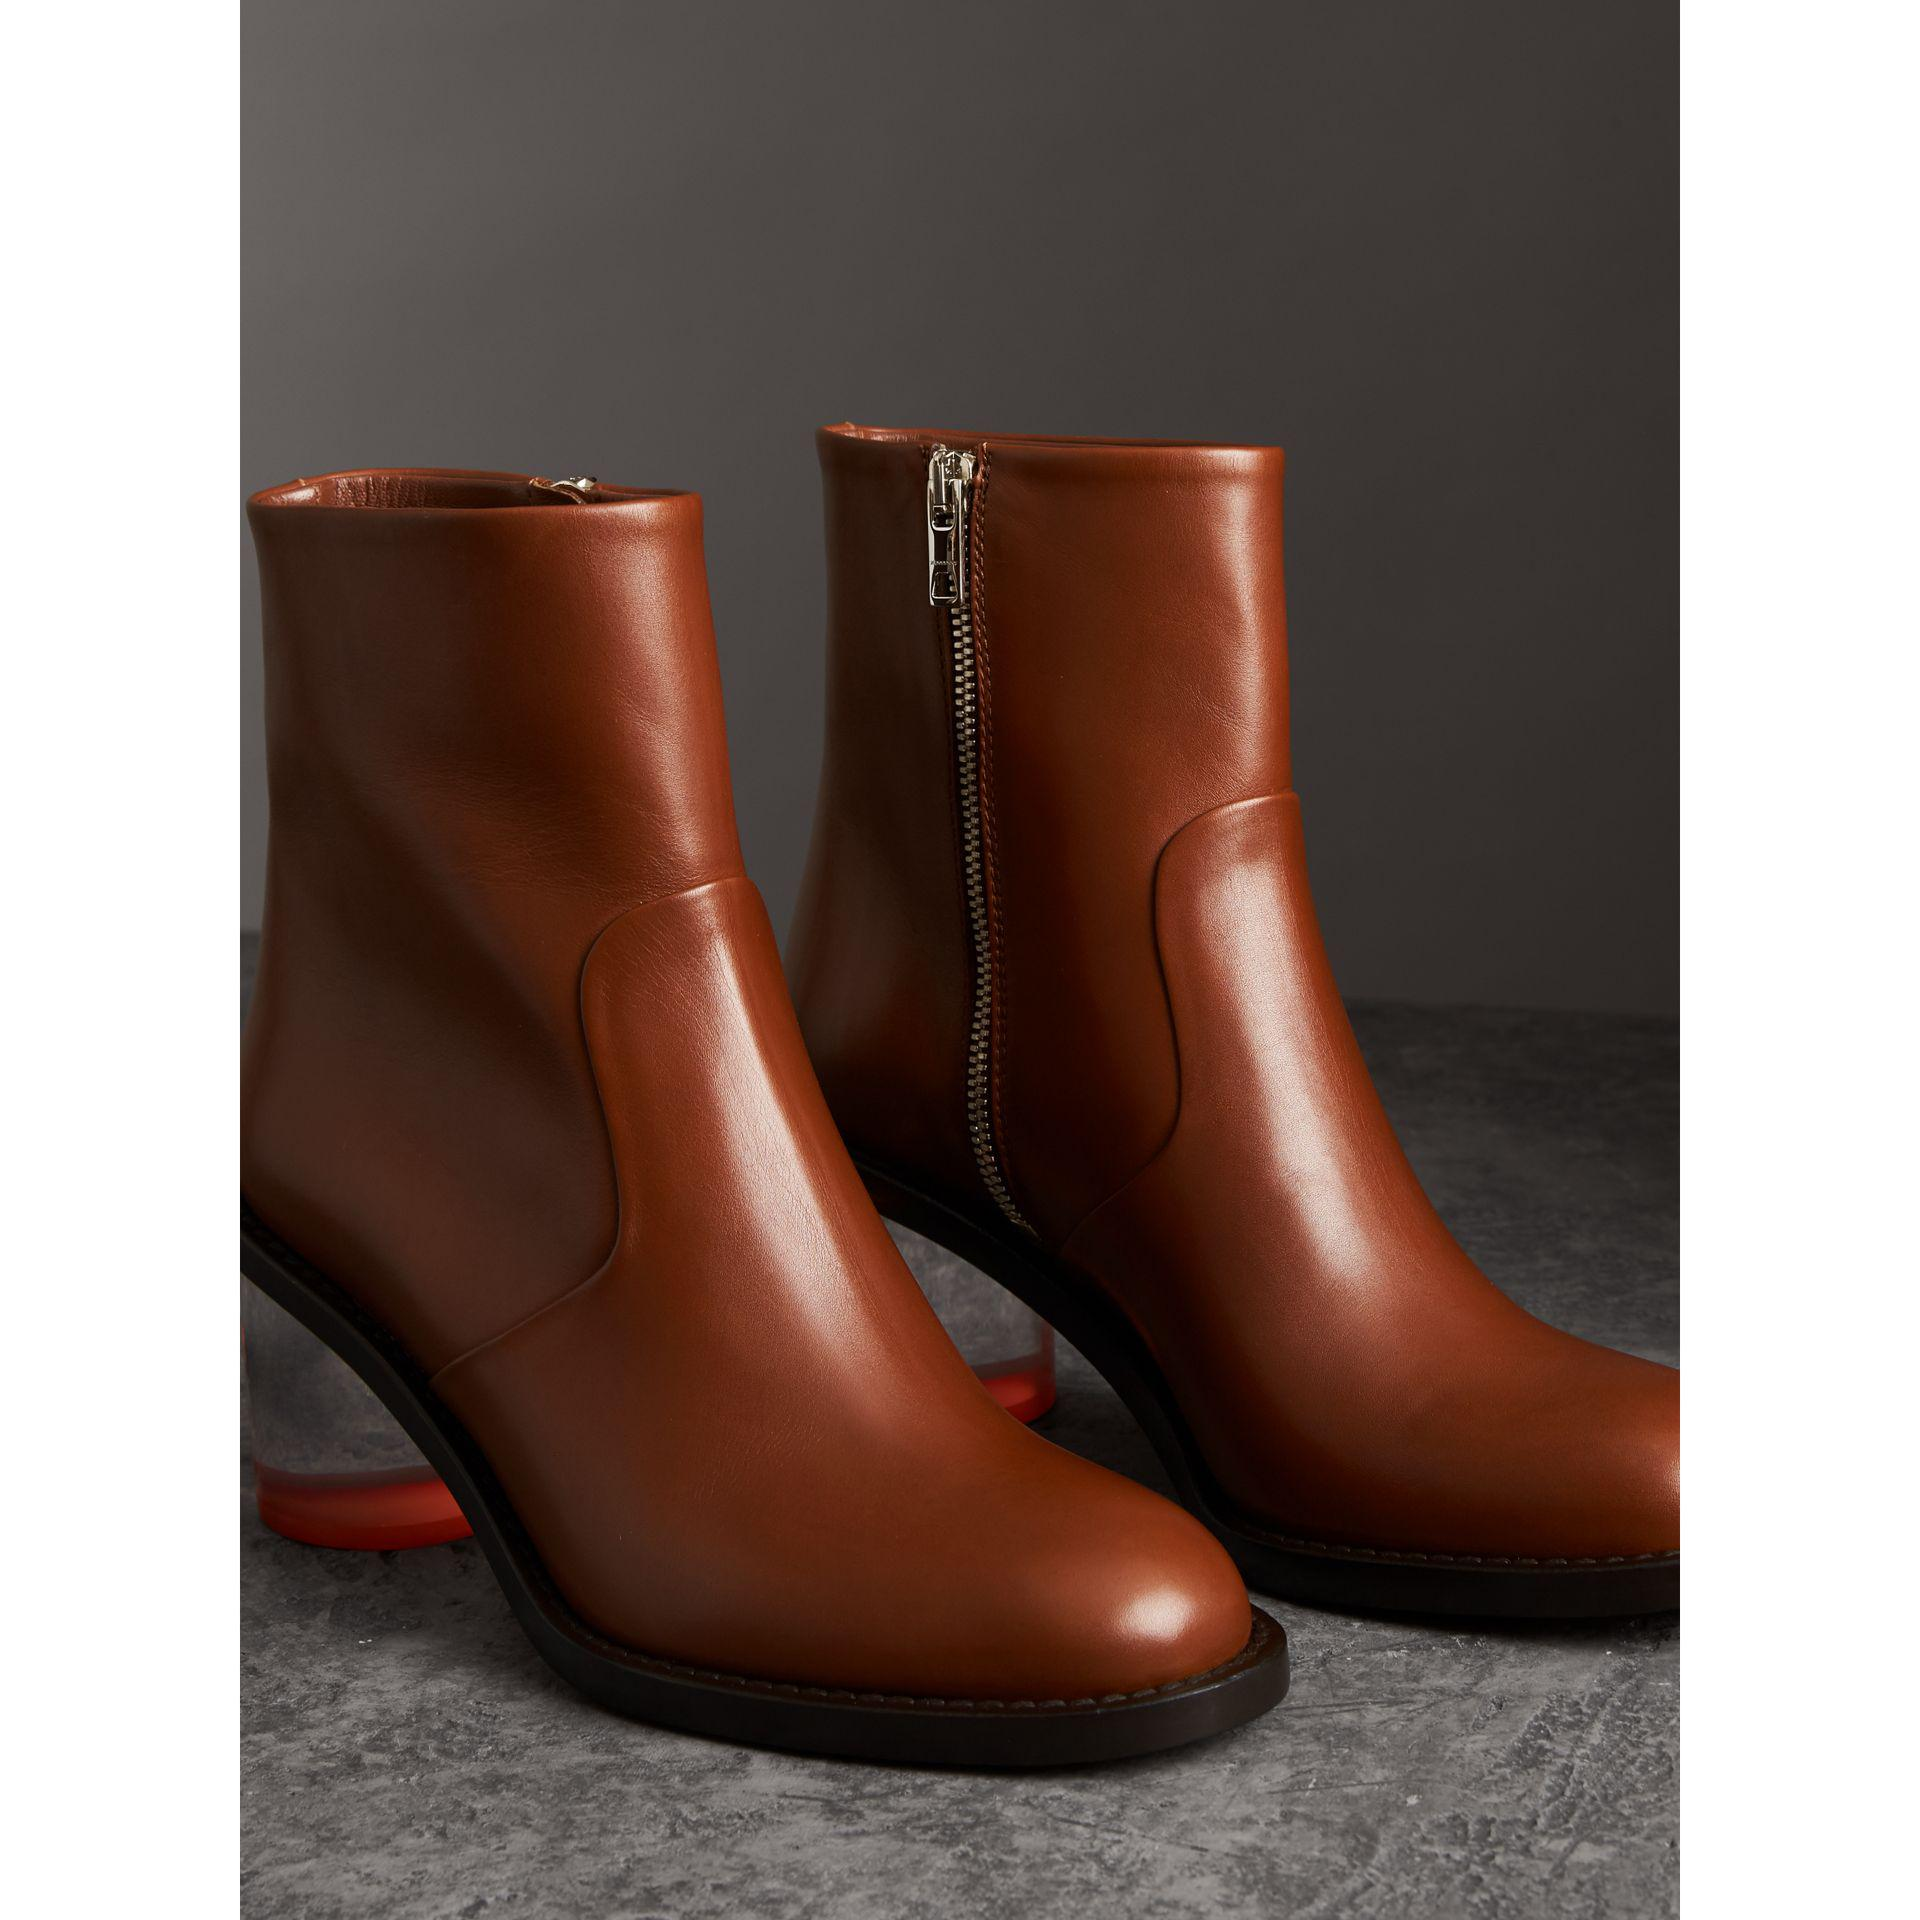 513610a96f48 Lyst - Burberry Two-tone Leather Block-heel Boots in Brown